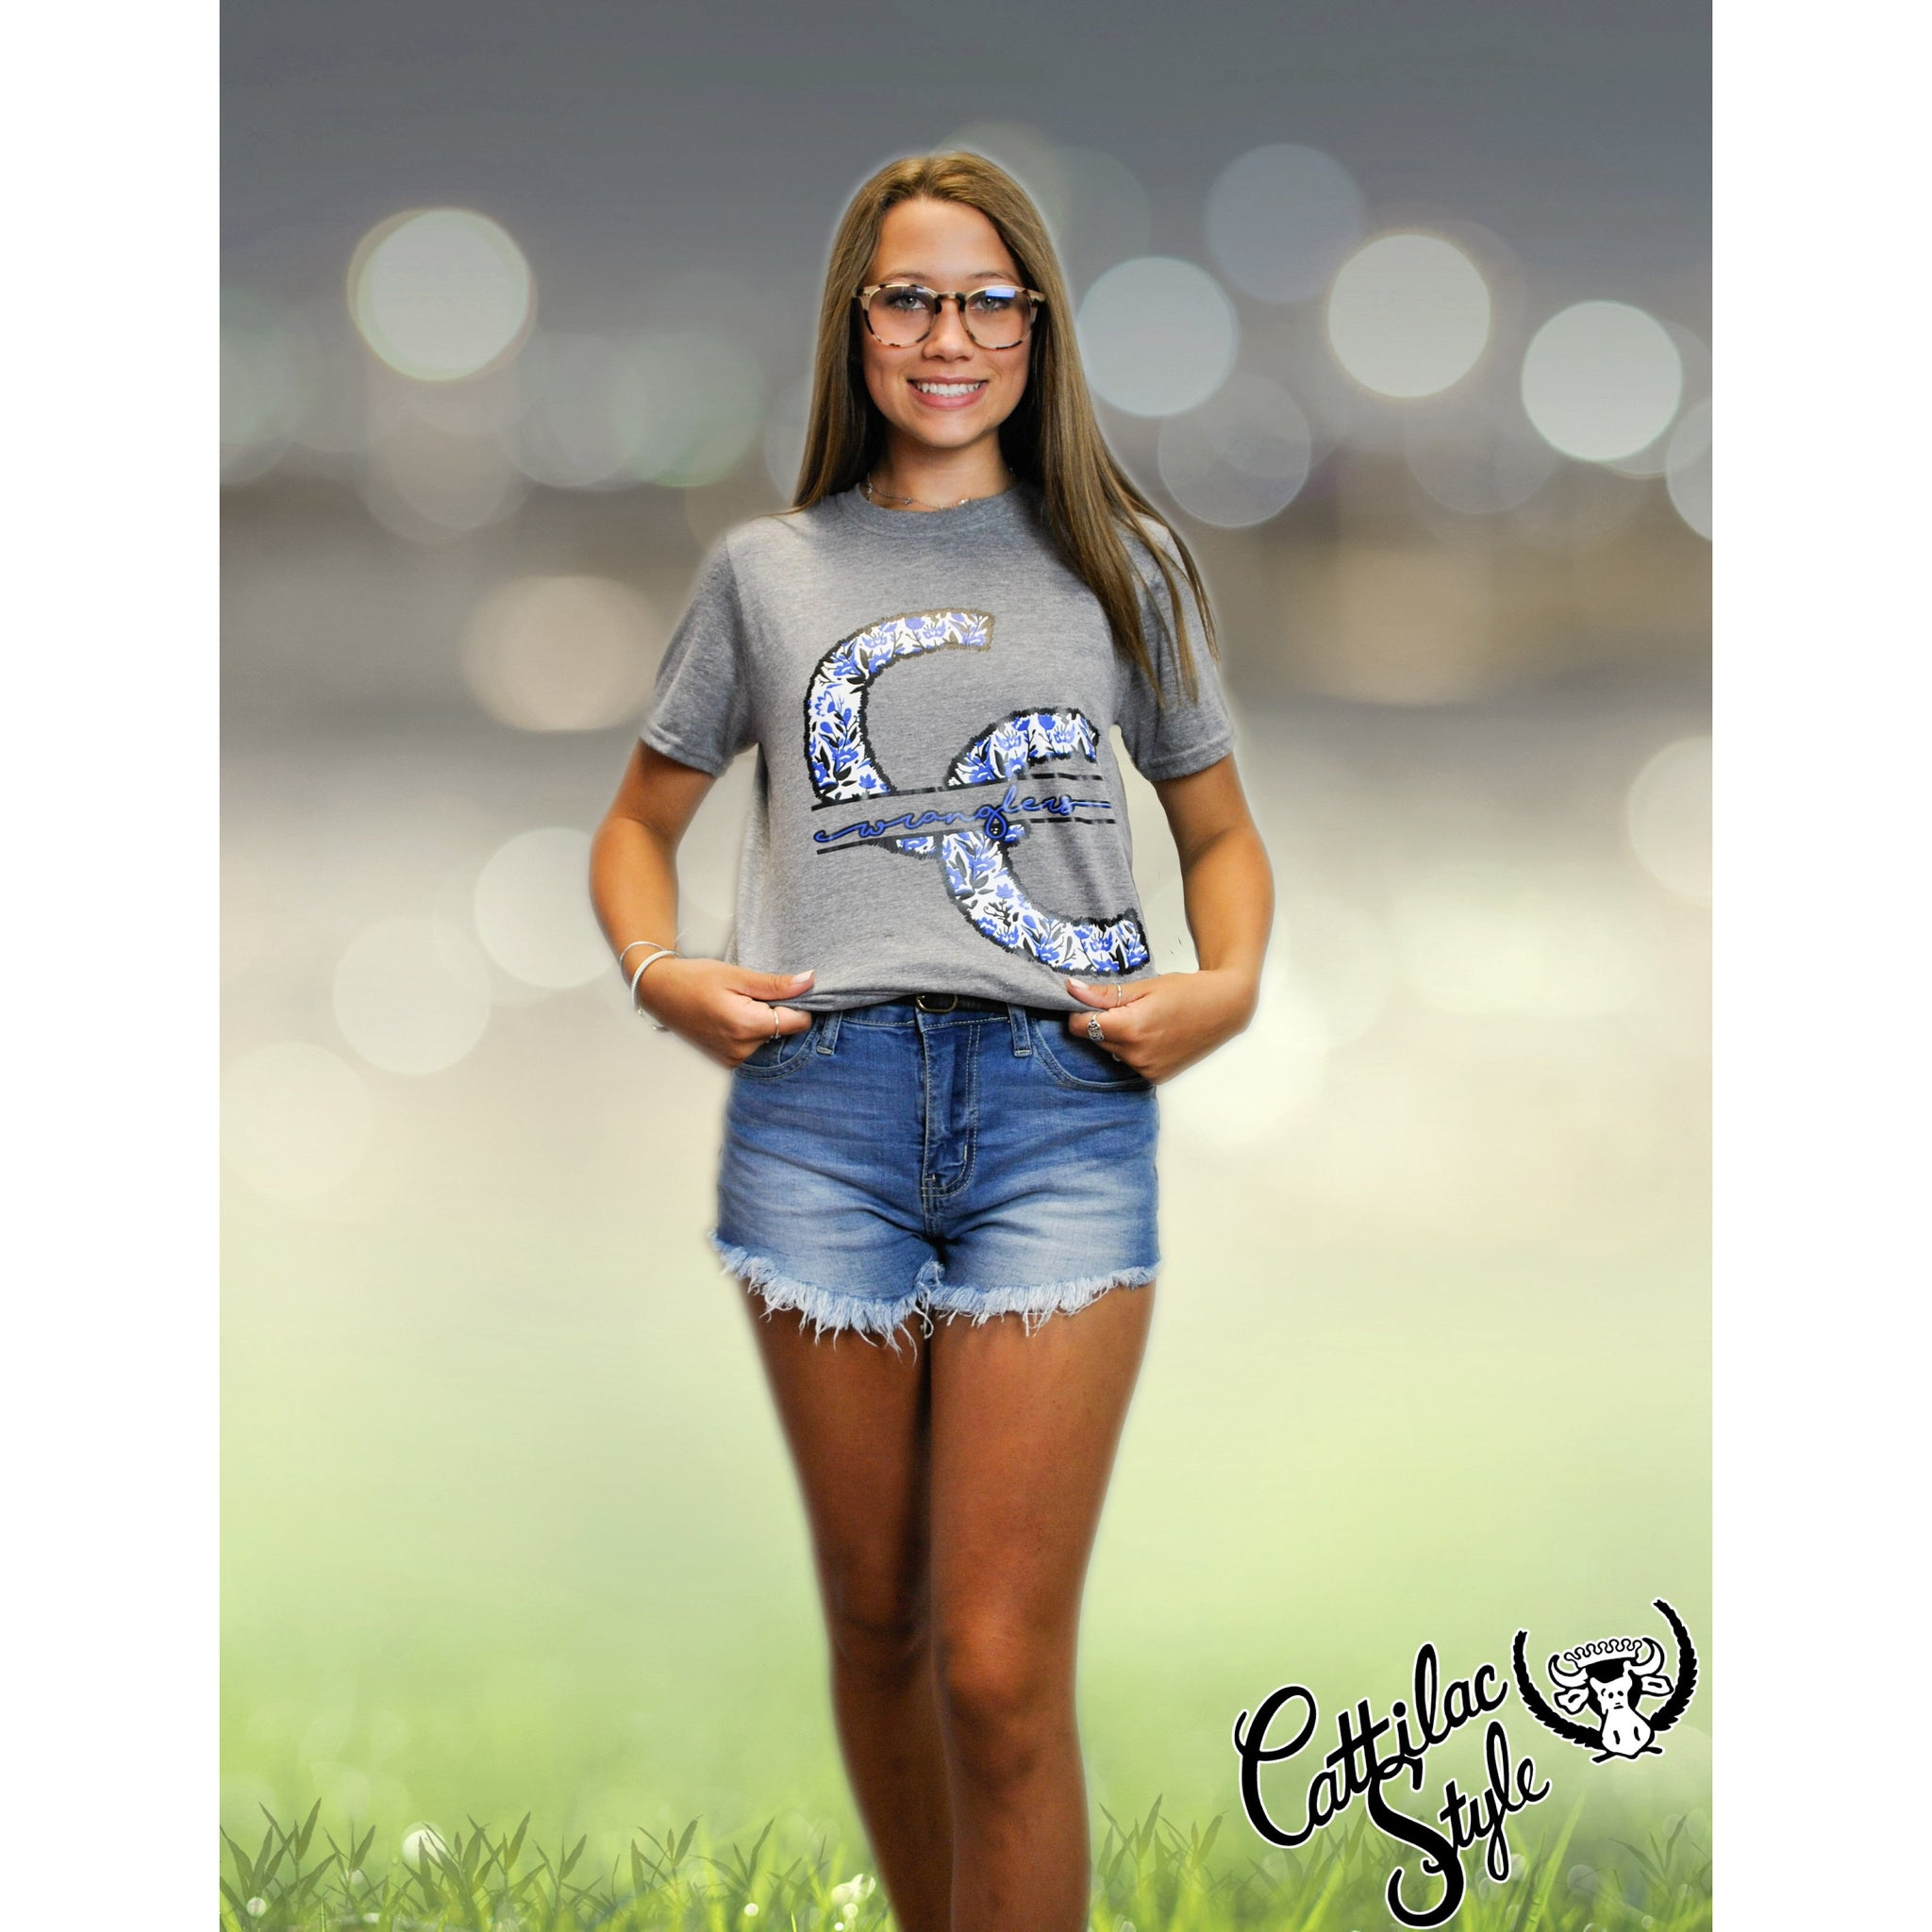 Cisco College Wranglers - Stitched Flowers T-Shirt